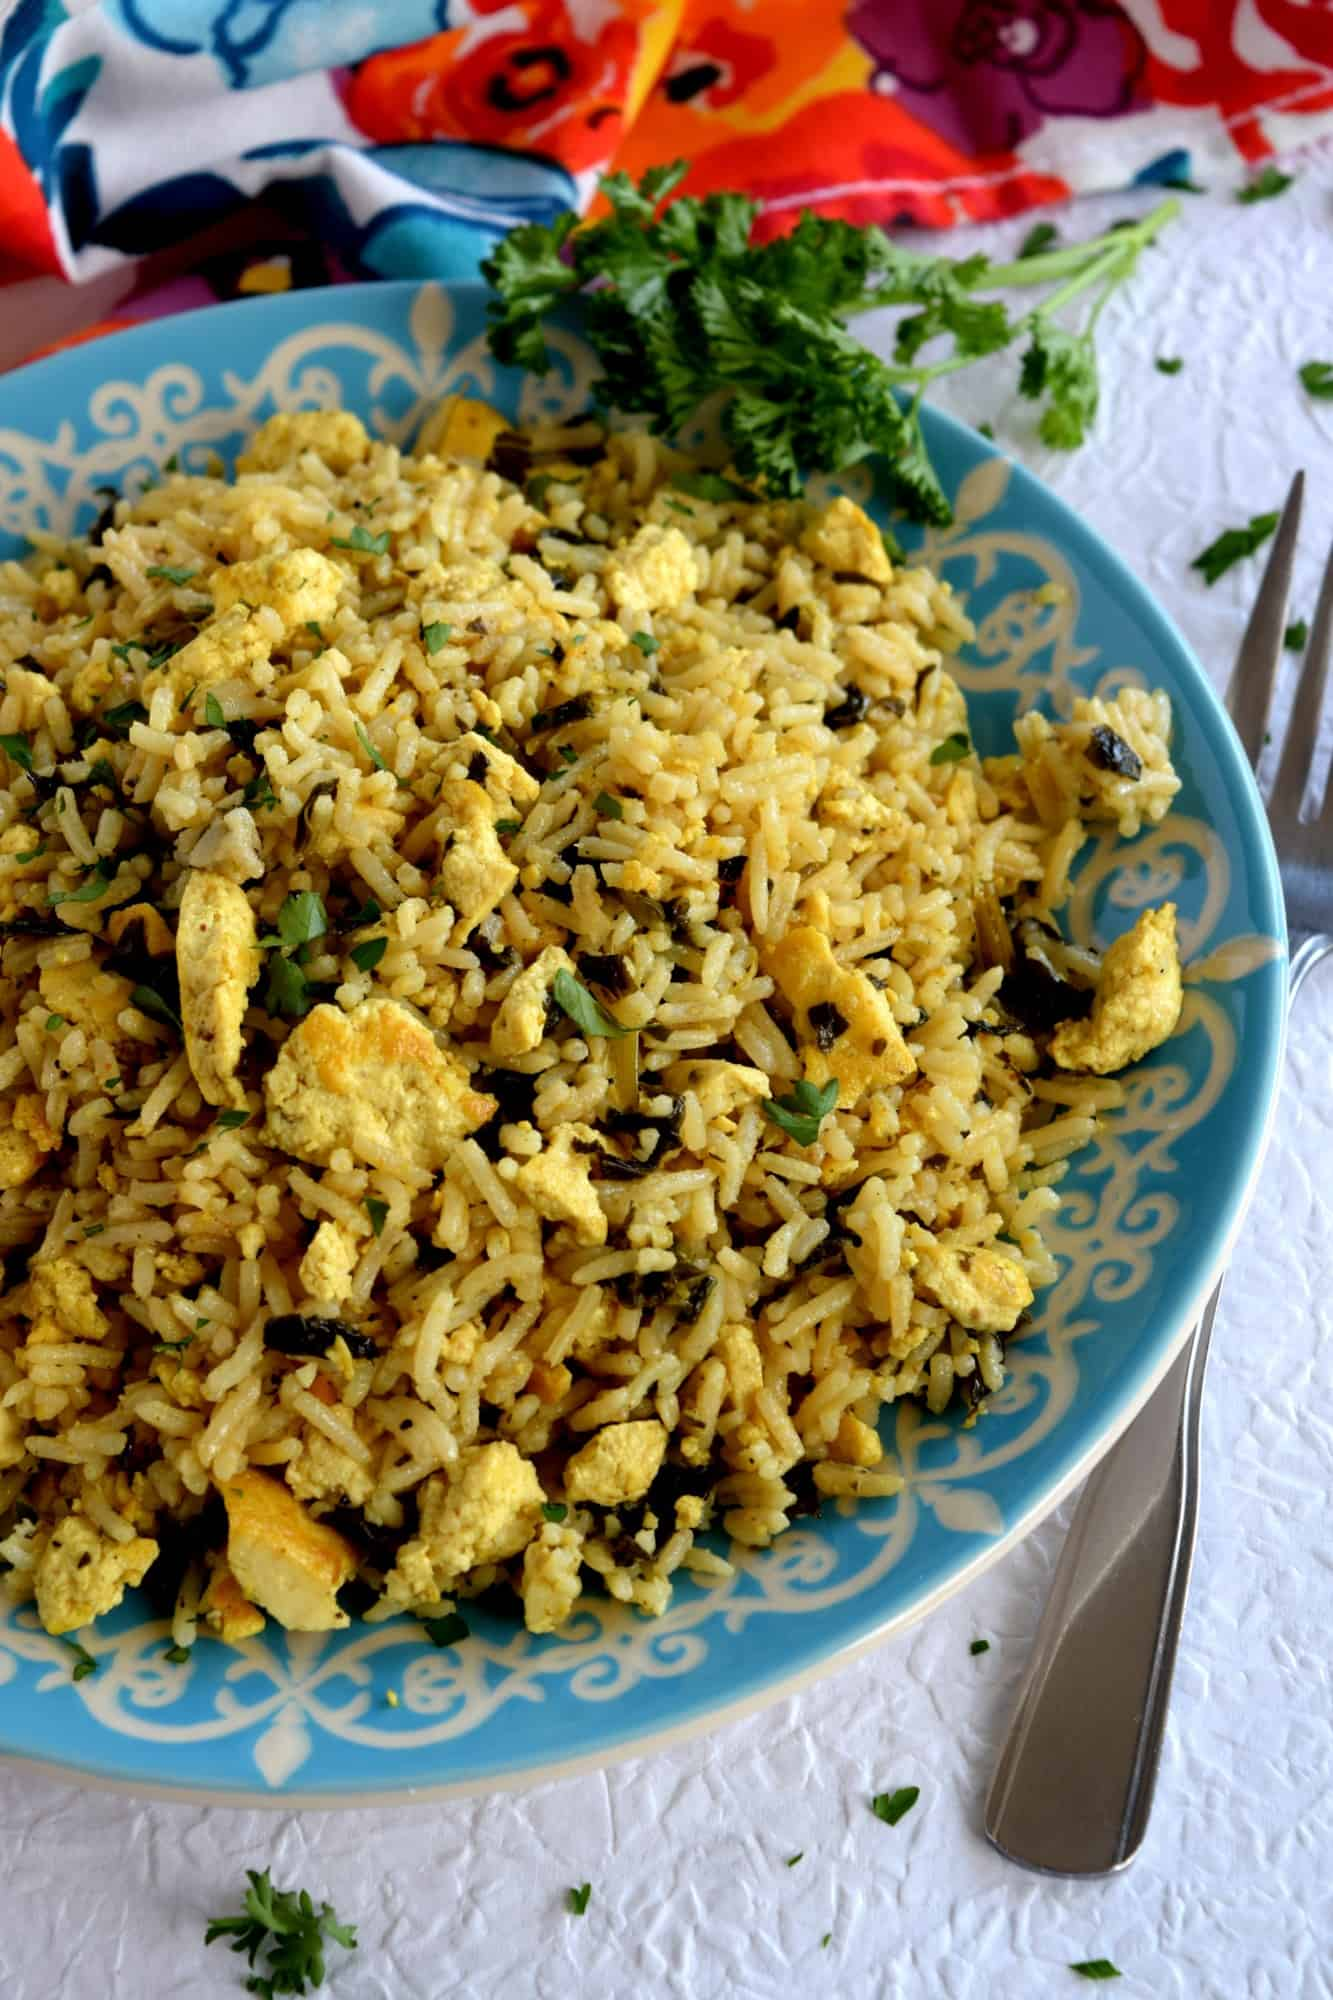 Scrambled tofu and kale fried rice lord byrons kitchen scrambled tofu and kale fried rice has to be on of the easiest dishes ive made in a very long time seriously this entire dish comes together in less than ccuart Image collections